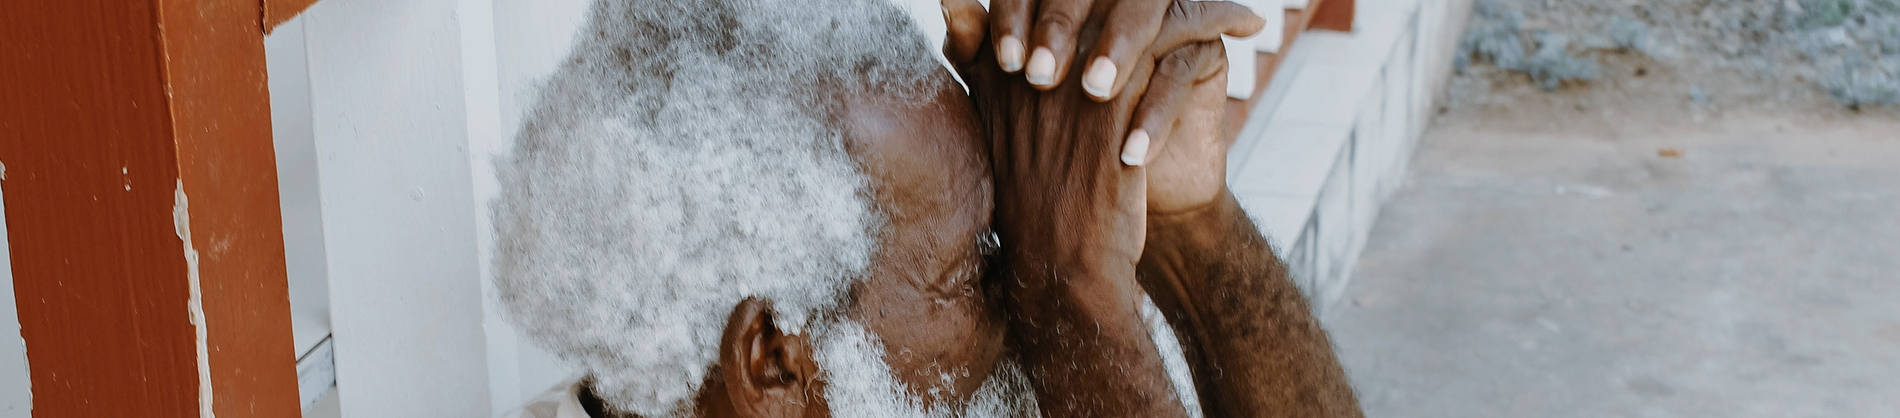 Elderly man with his hands together up to his face